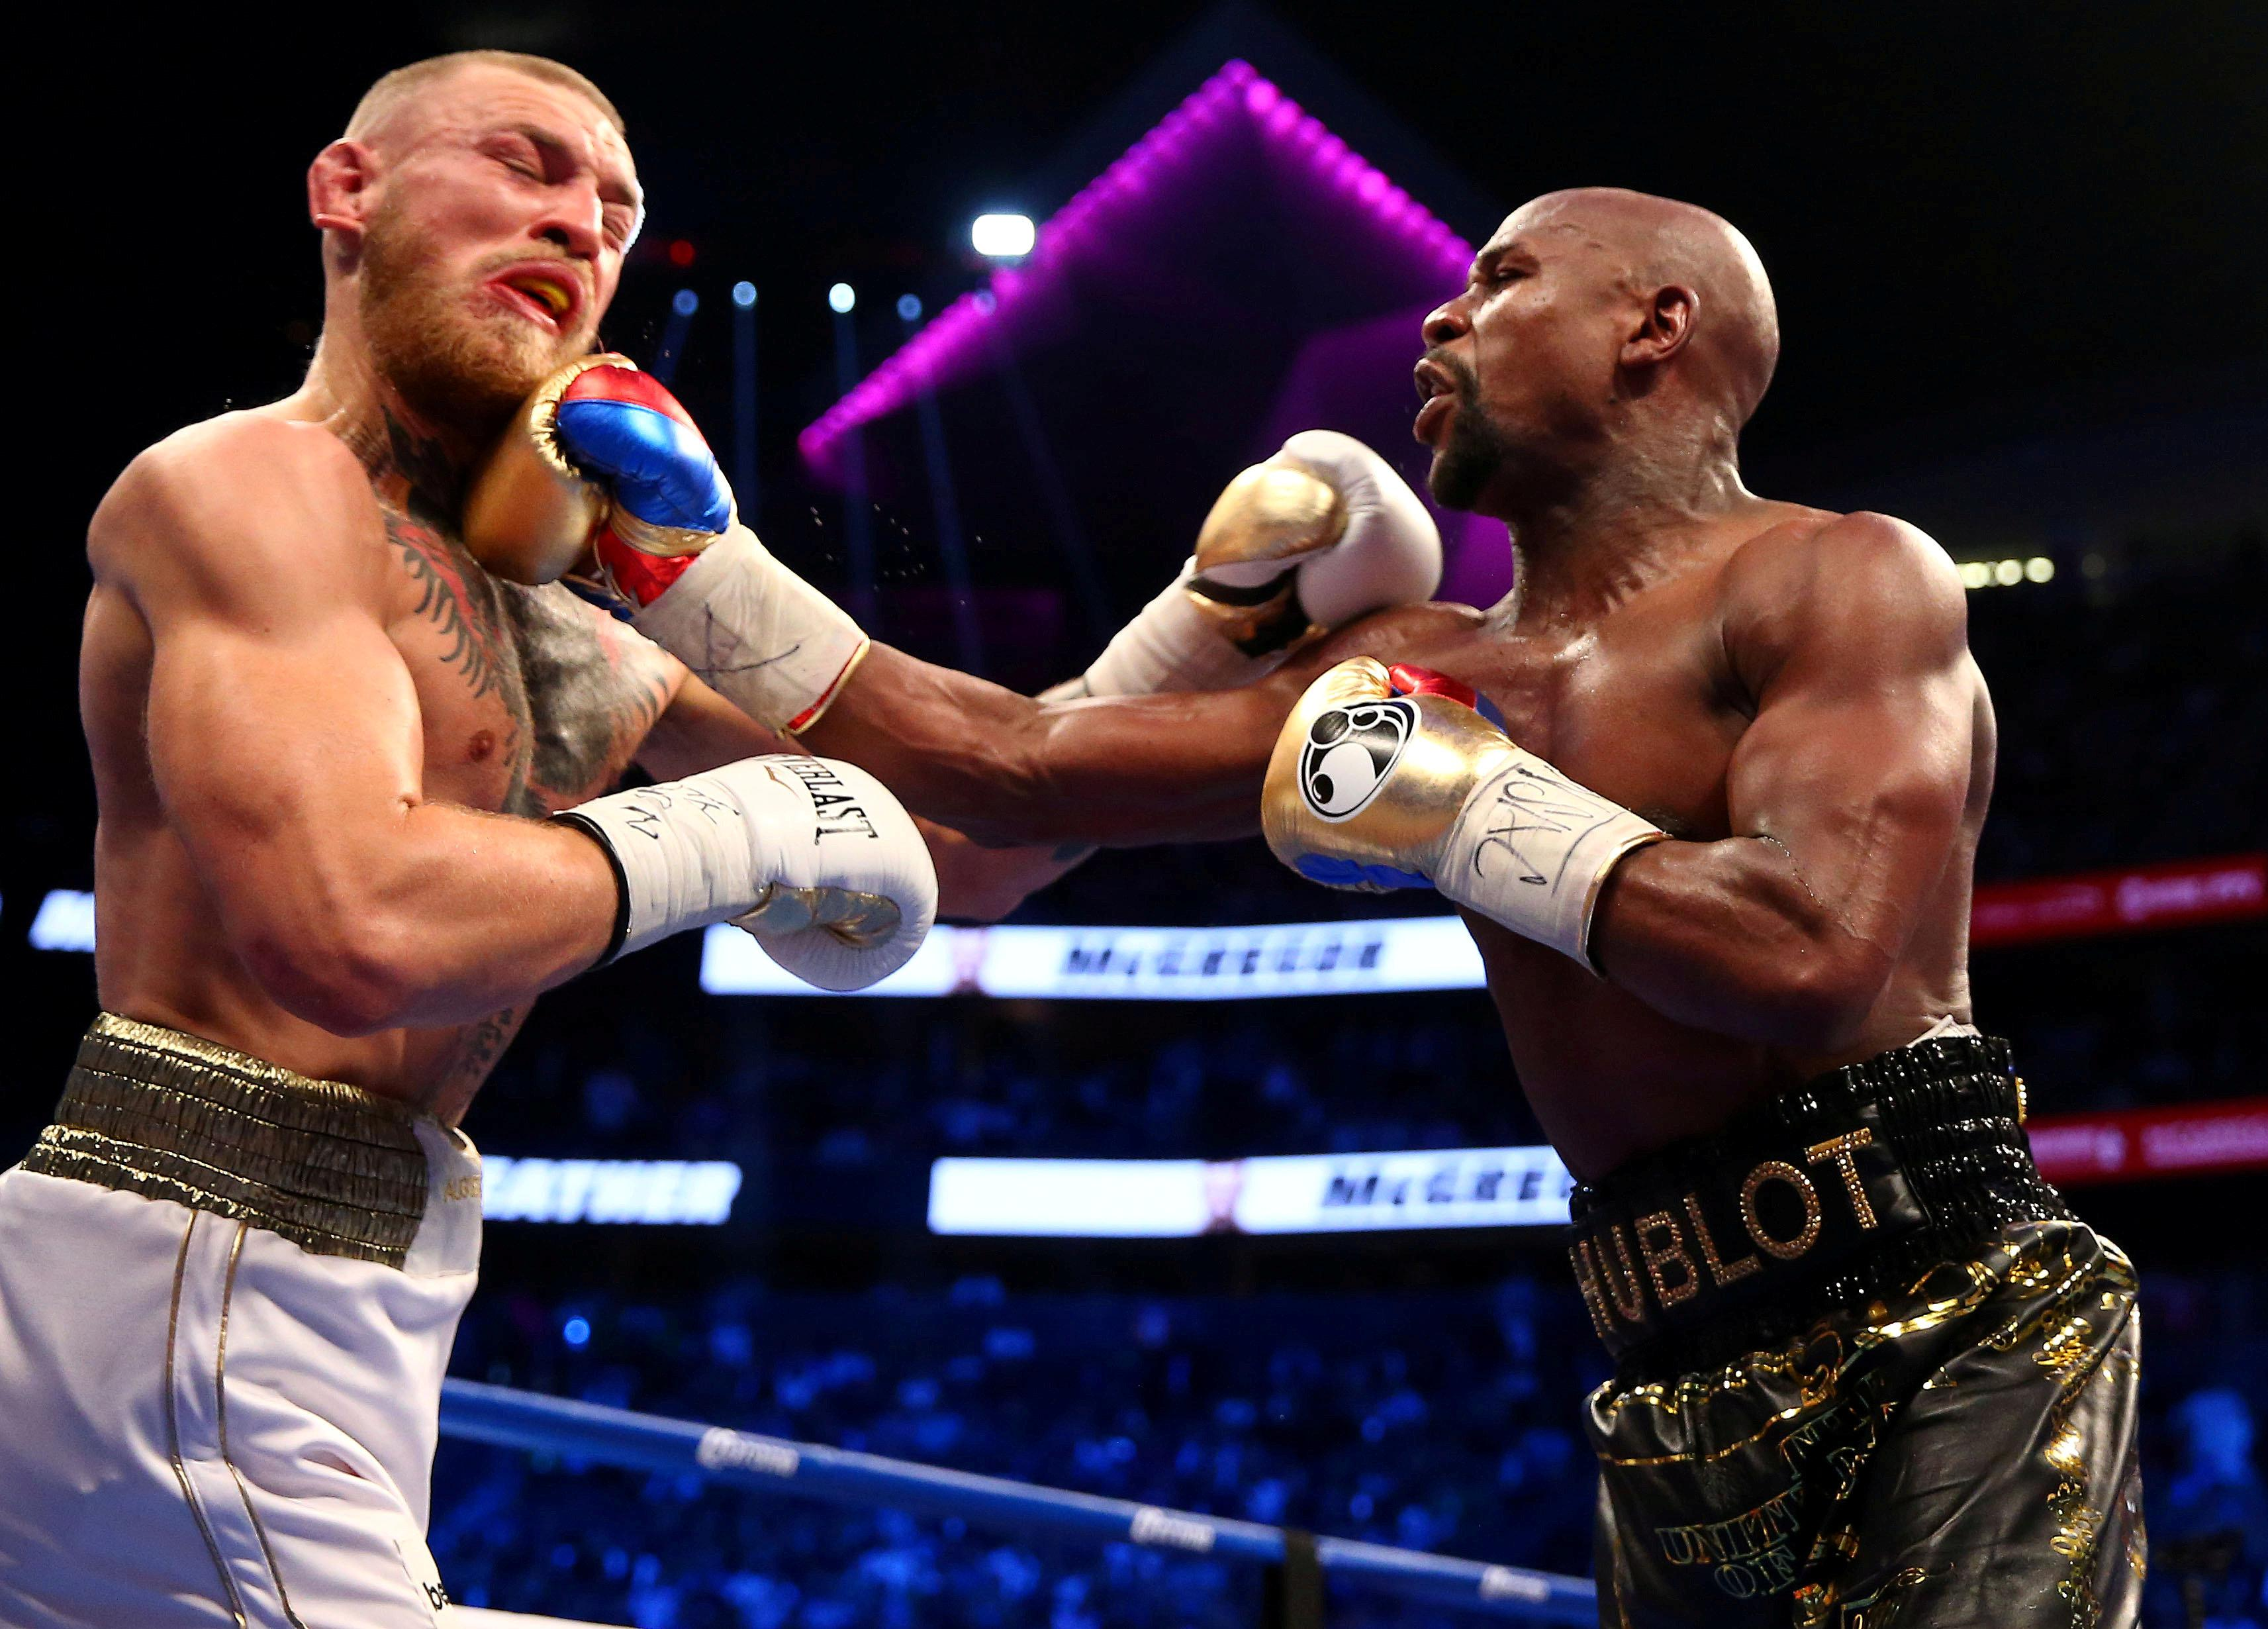 UFC star Conor McGregor switched combats to fight Floyd Mayweather in a boxing ring last year